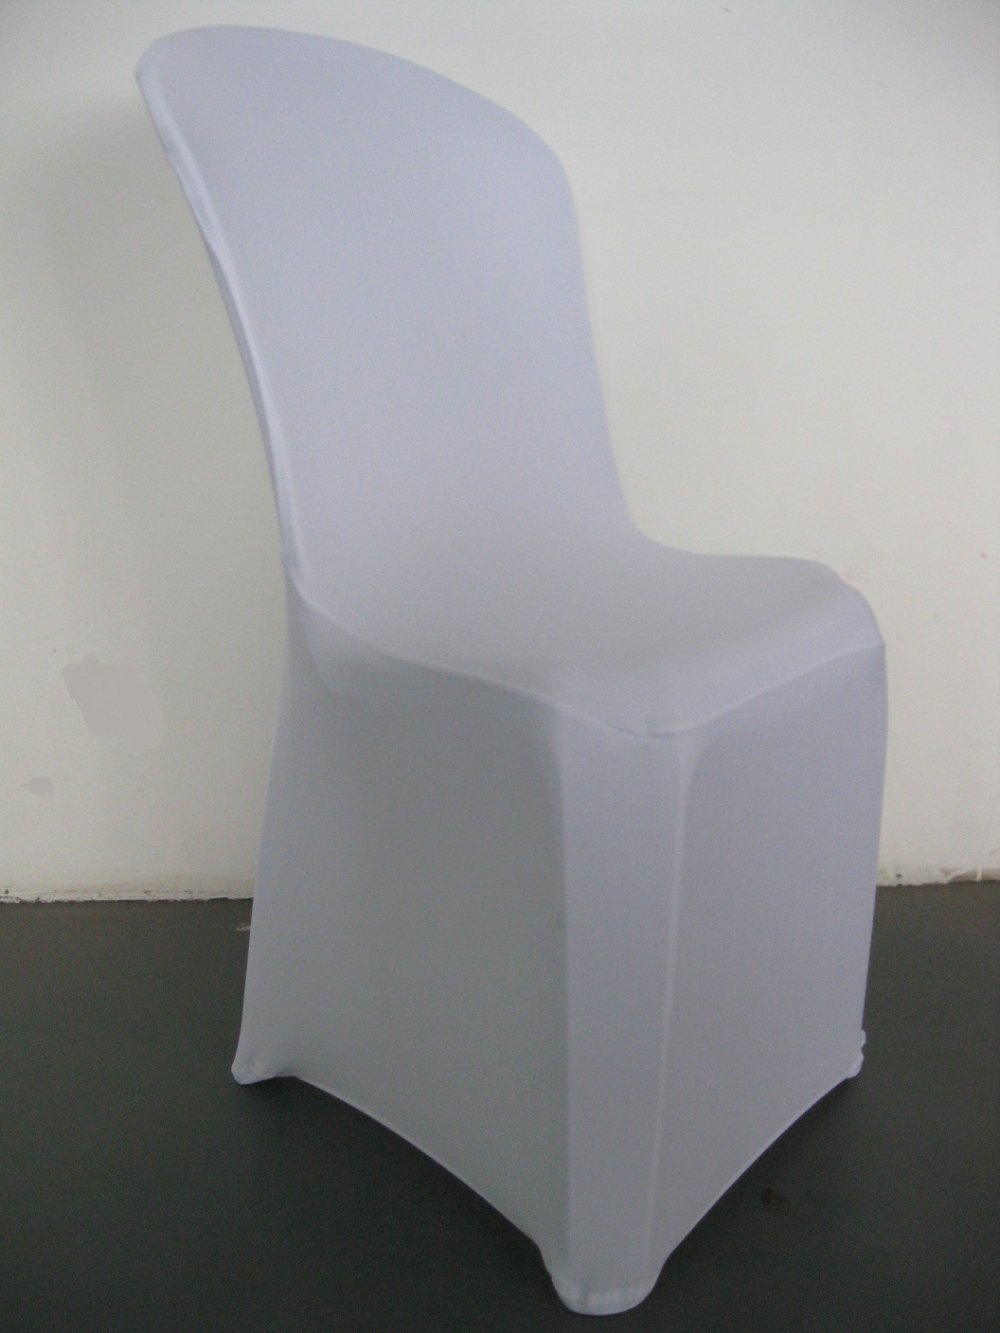 200gsm thick spandex fabric,plastic chair cover,various colors,fit